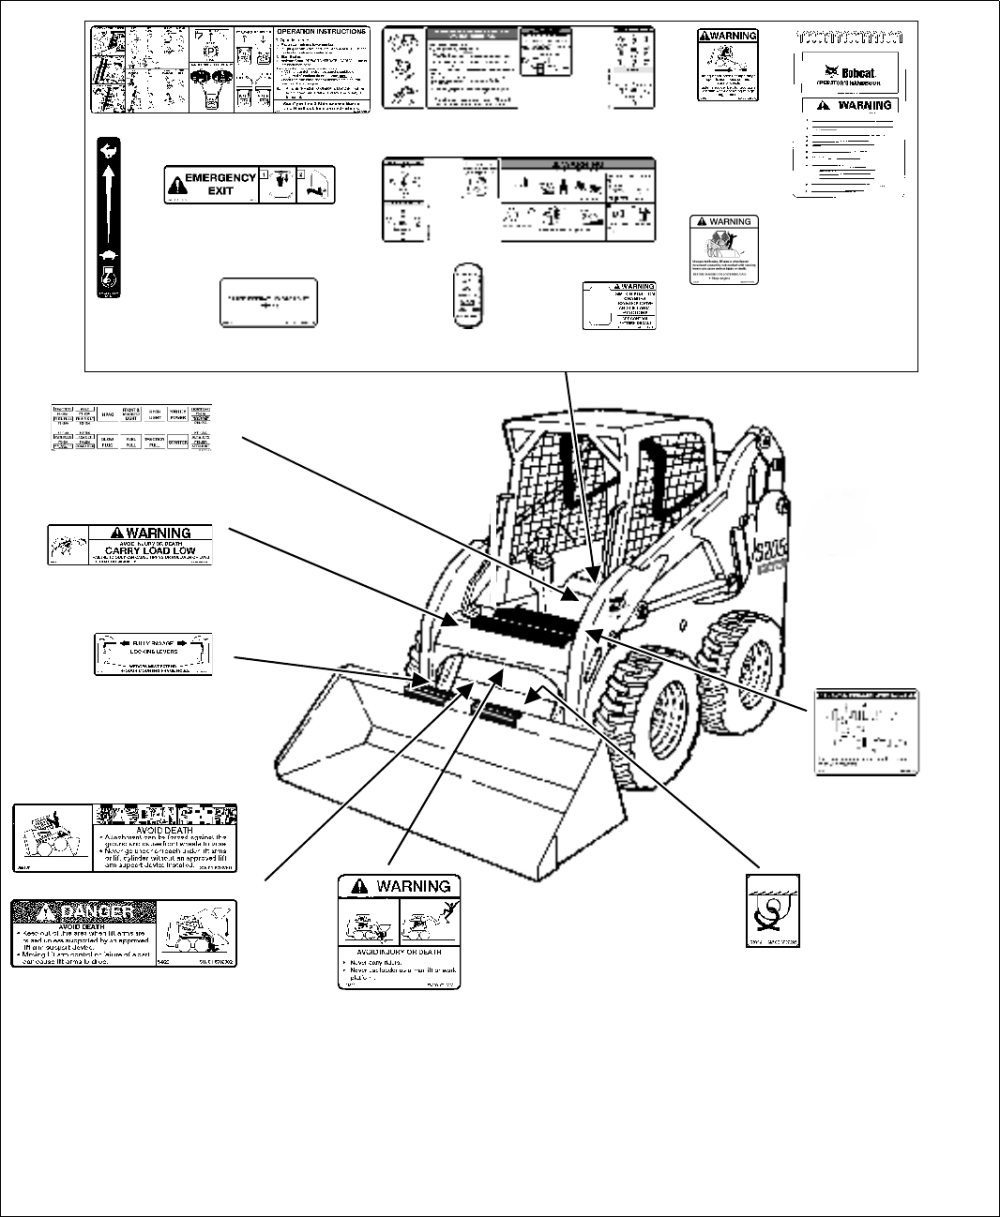 medium resolution of bobcat fuse box location wiring diagram showbobcat fuse box location wiring diagram bobcat 753 fuse box